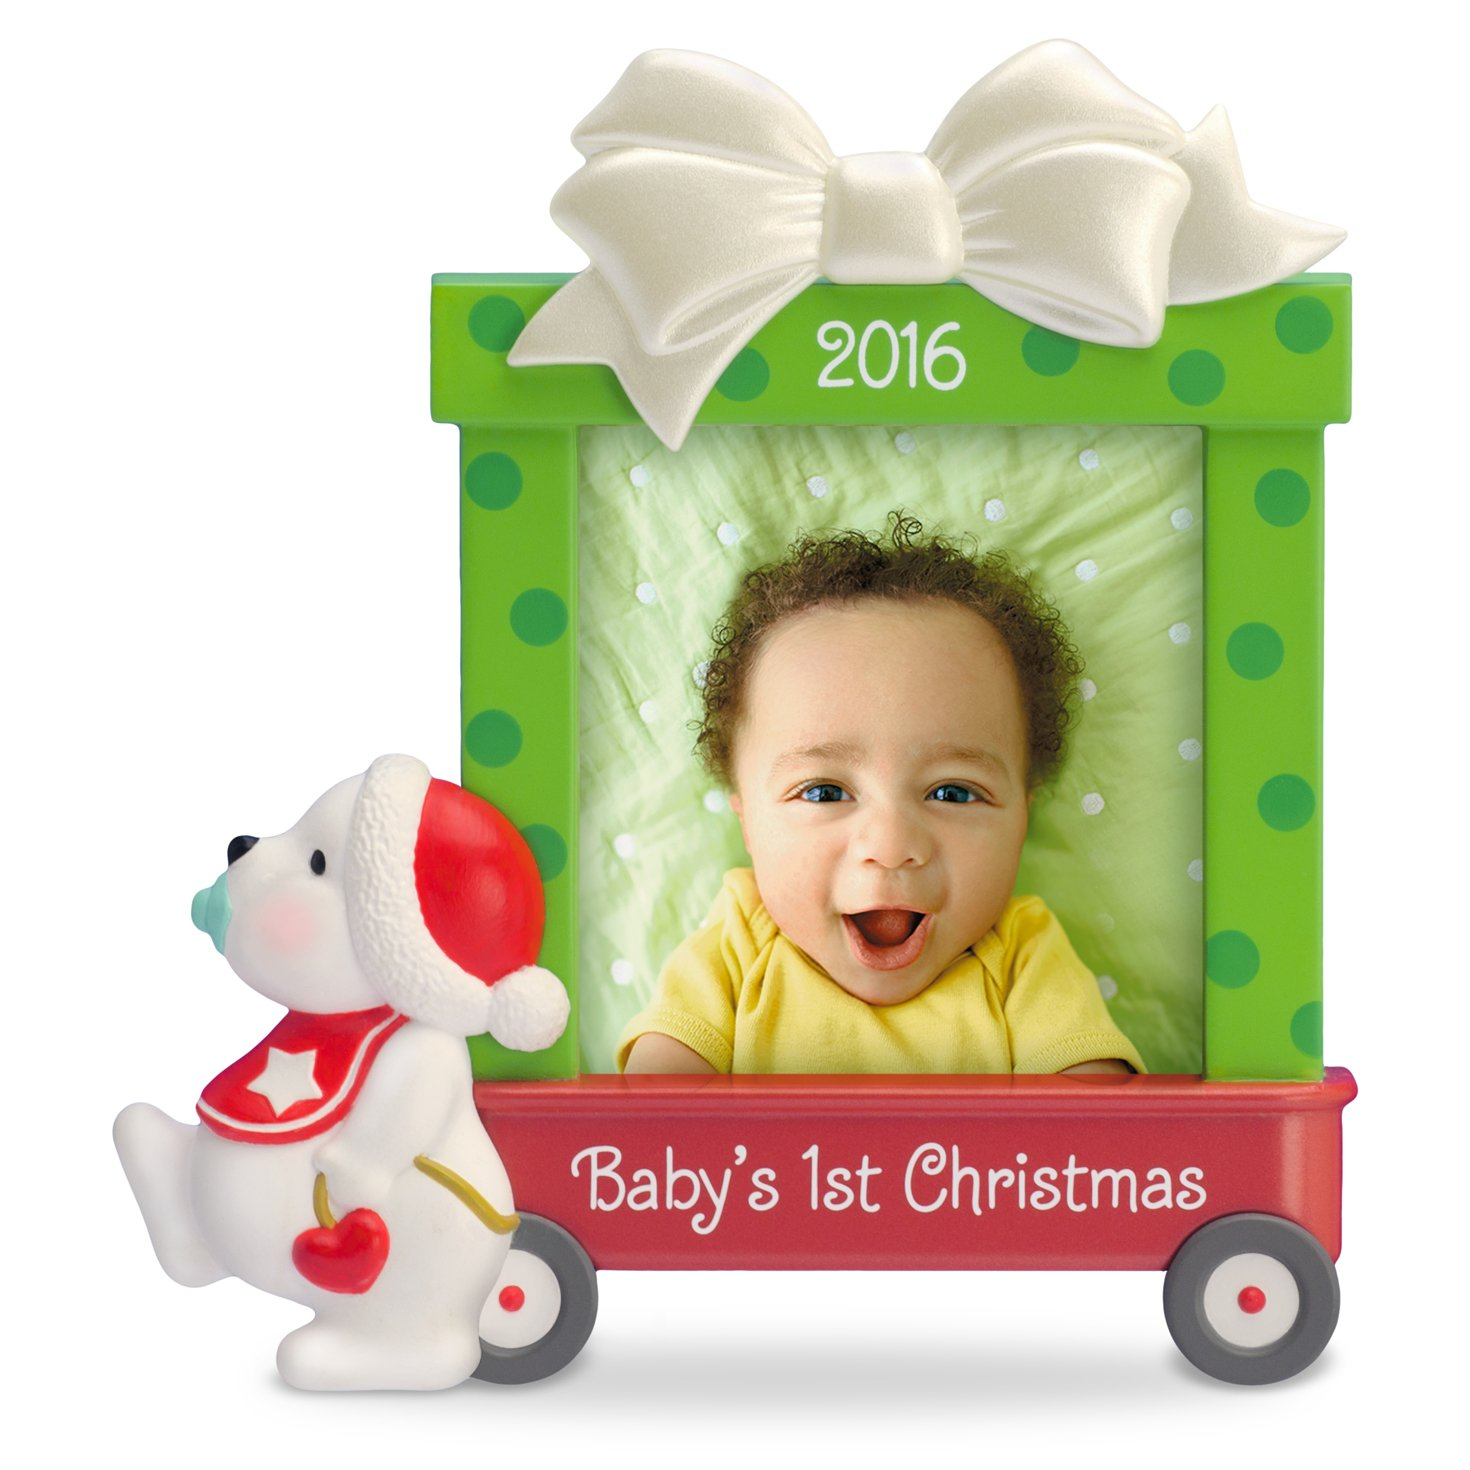 amazoncom hallmark keepsake babys first 2016 beary cute dated picture frame holiday ornament home kitchen